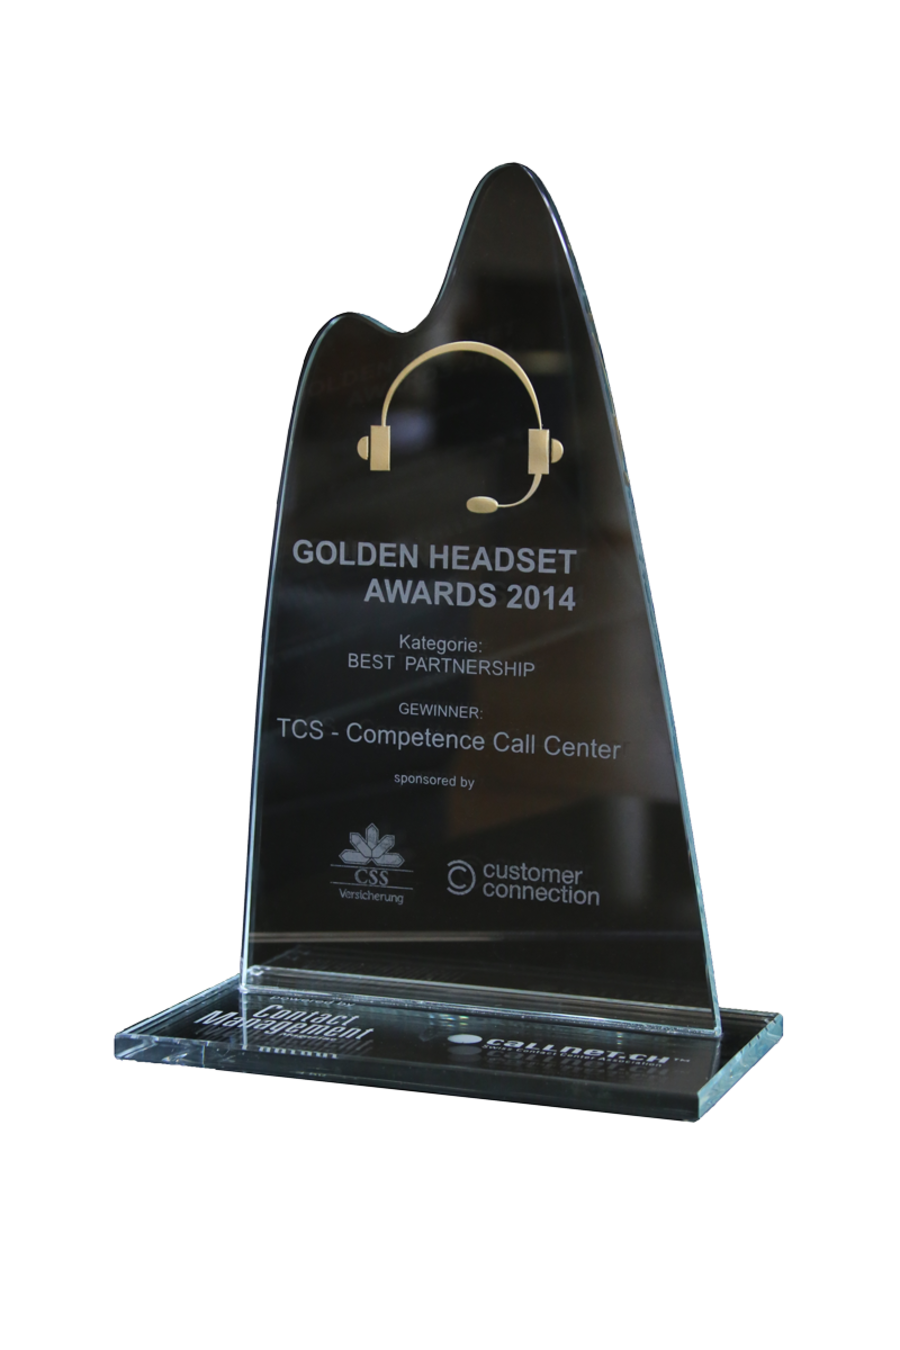 Golden Headset Awards 2014